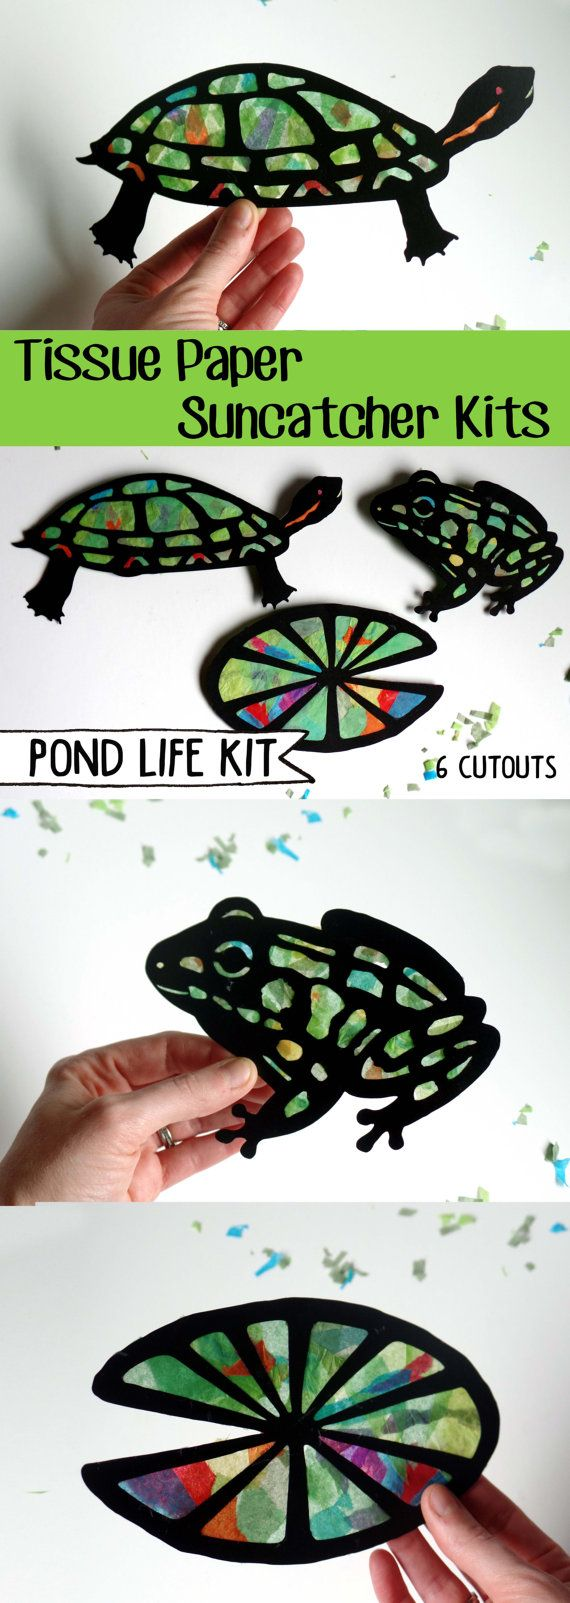 kids craft pond life stained glass tissue paper suncatcher. Black Bedroom Furniture Sets. Home Design Ideas